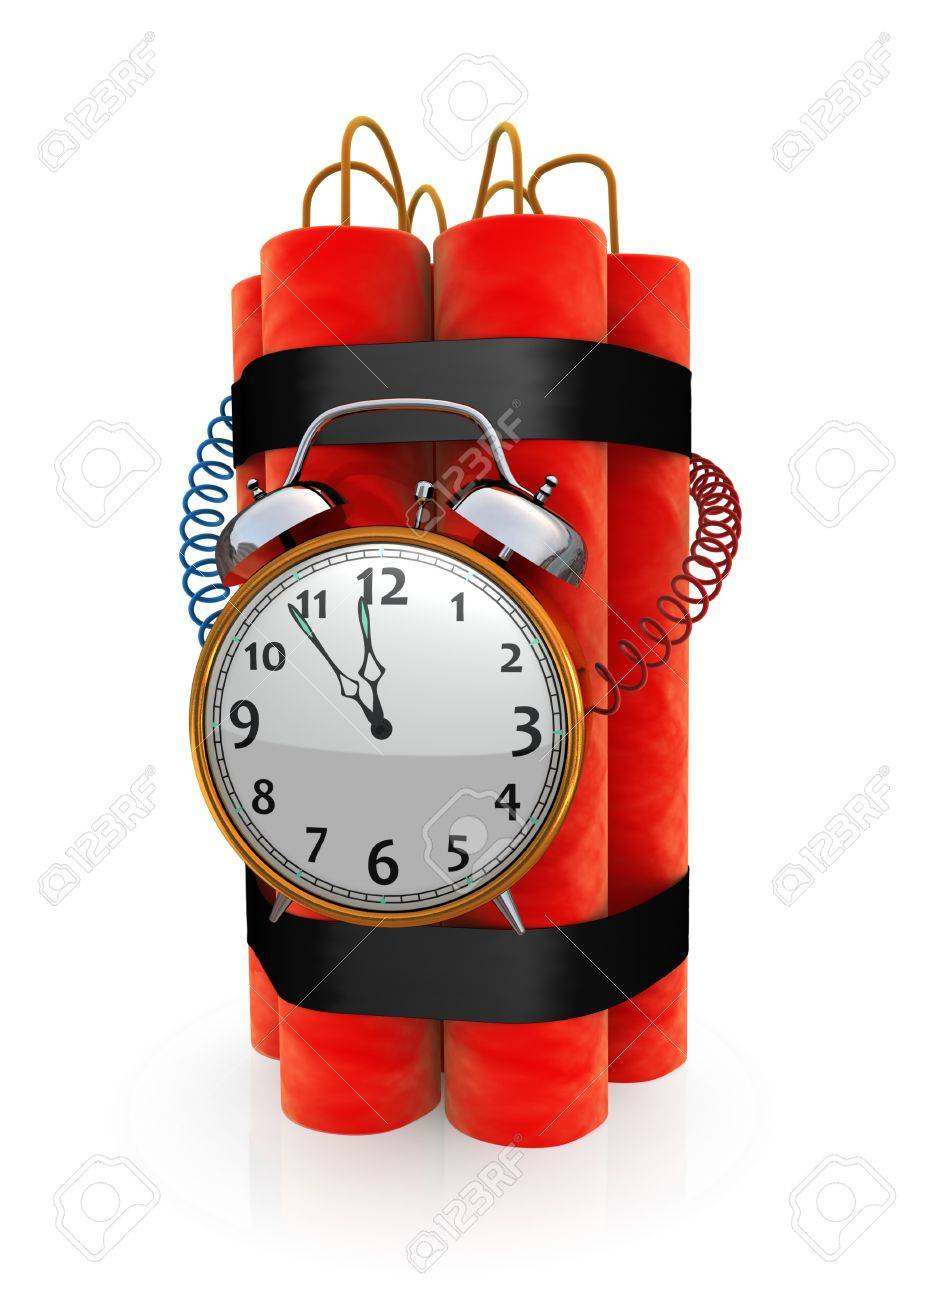 Bomb with timer Stock Photo - 10333589